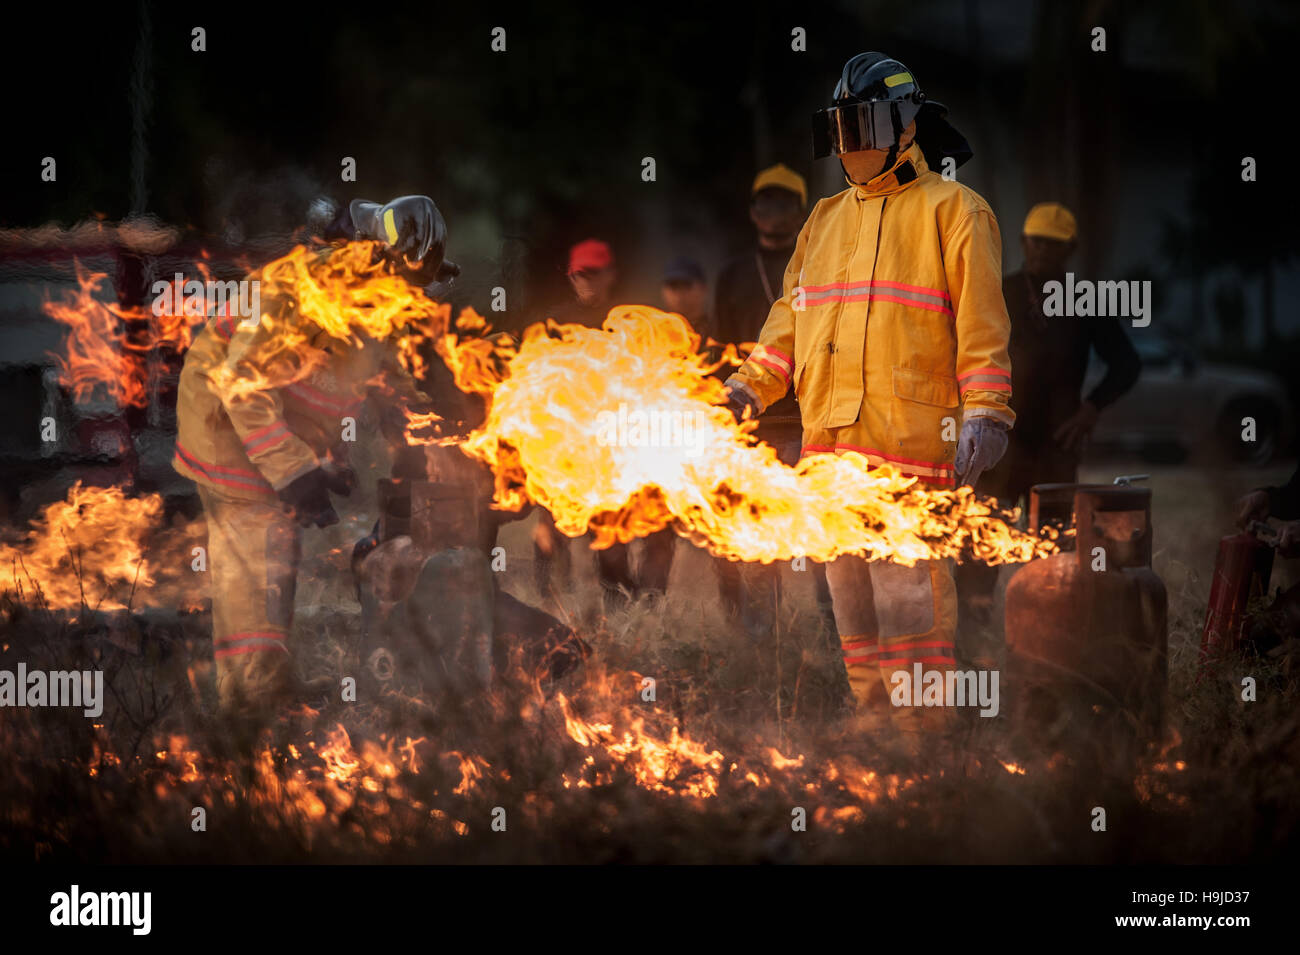 Silhouette of Firemen fighting a raging fire with huge flames of burning timber - Stock Image